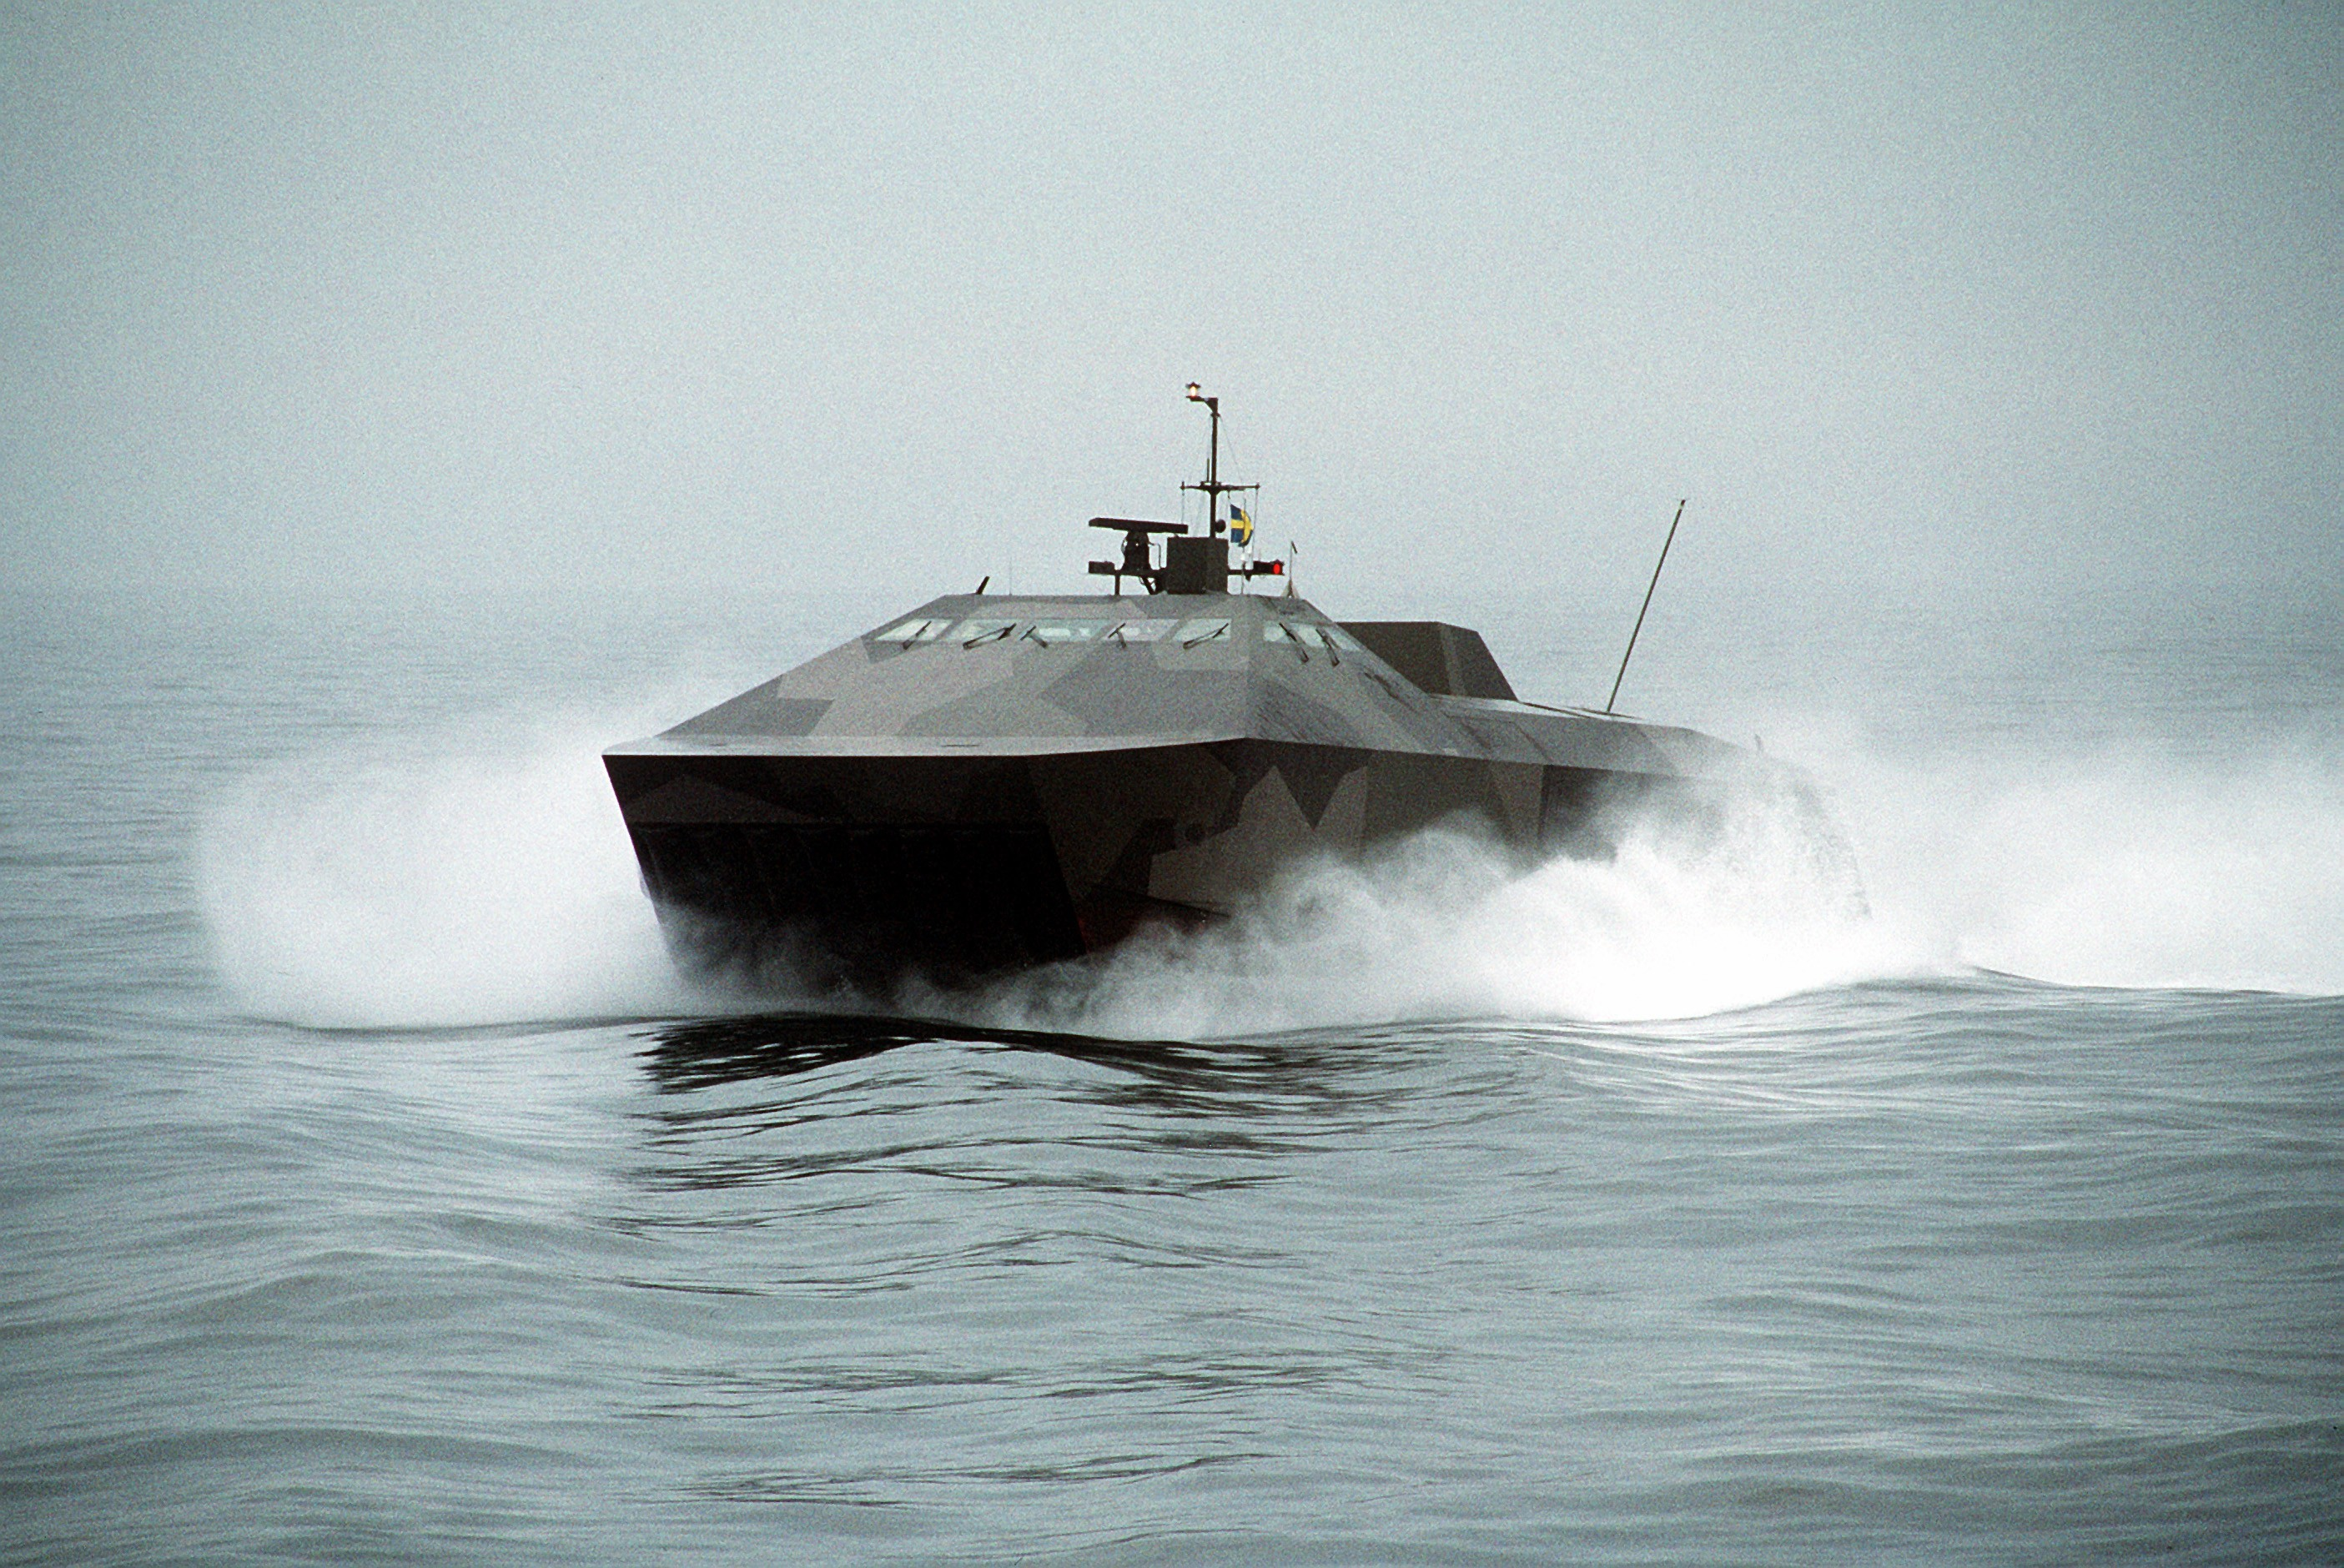 Hswms smyge stealth ship sweden swedish army hovercraft ...